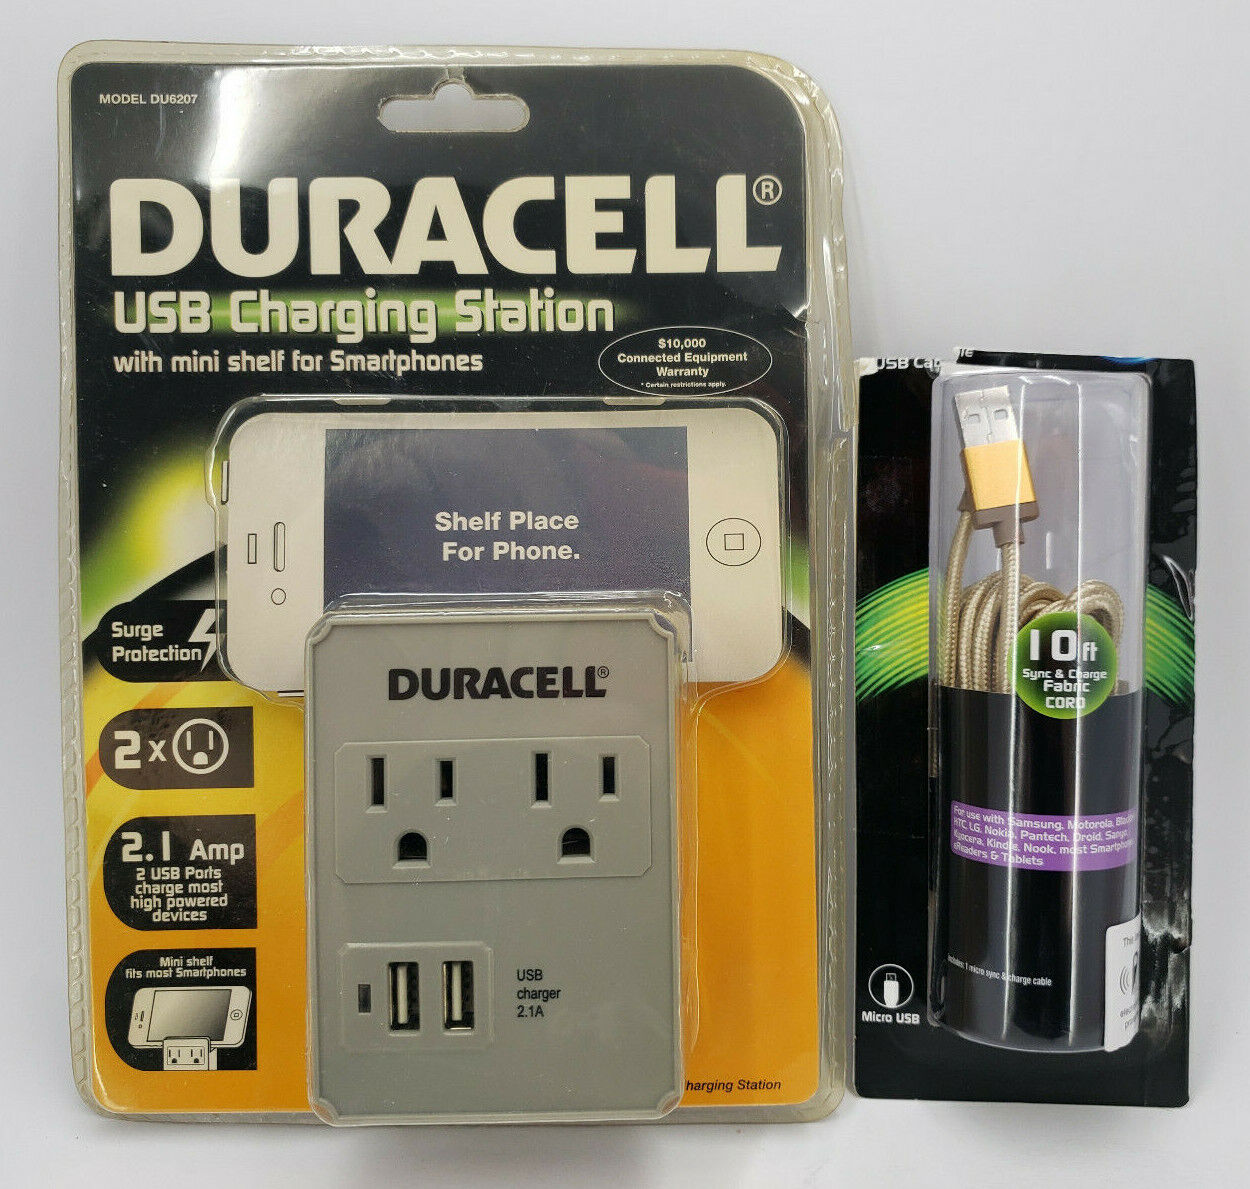 Duracell Dual Surge USB Charger Outlet for iPhone 3G/3GS/4/4